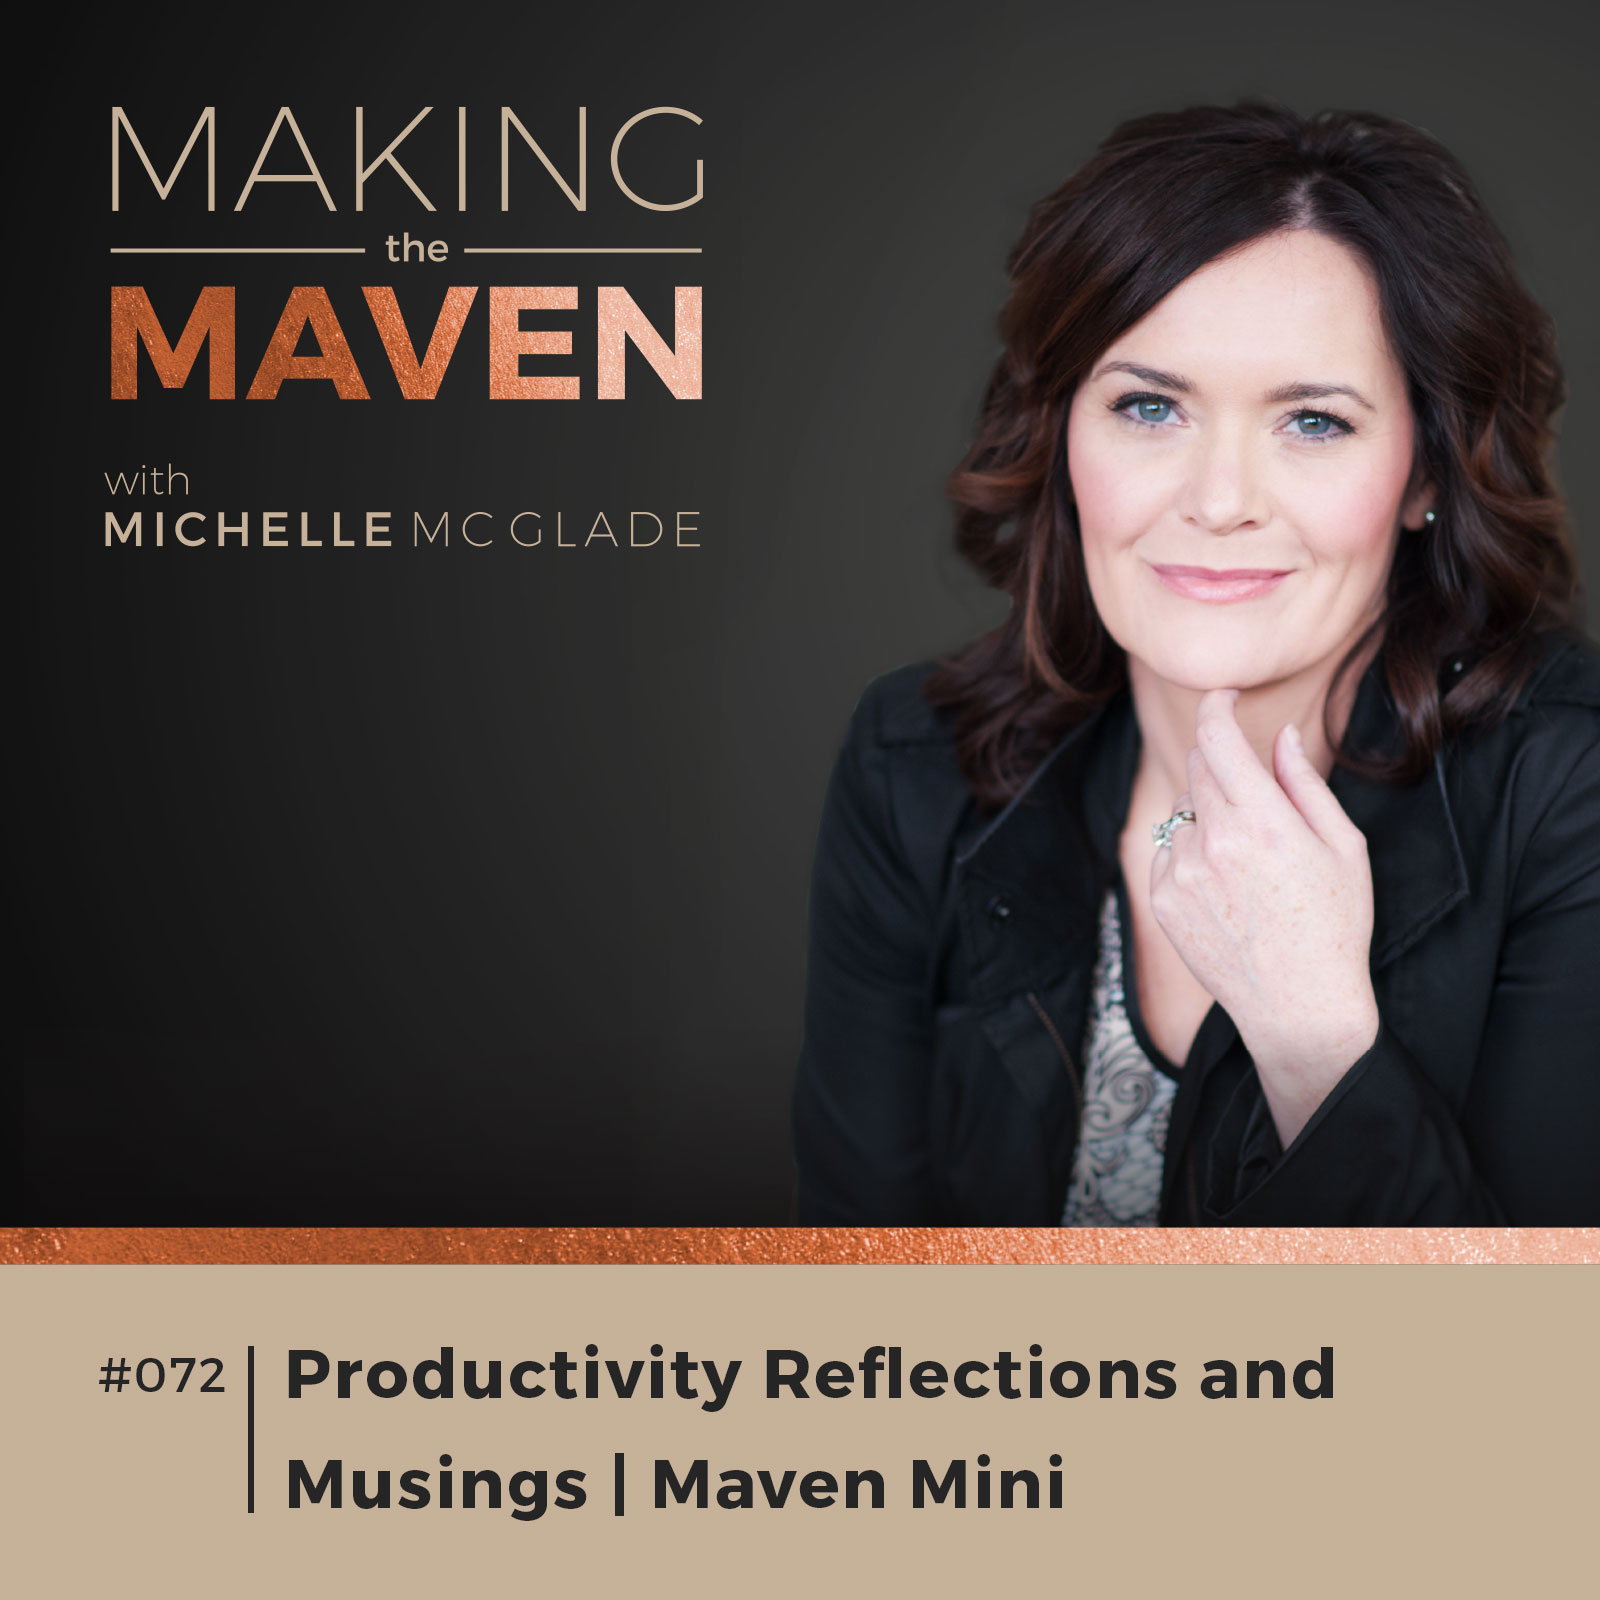 Productivity Reflections and Musings